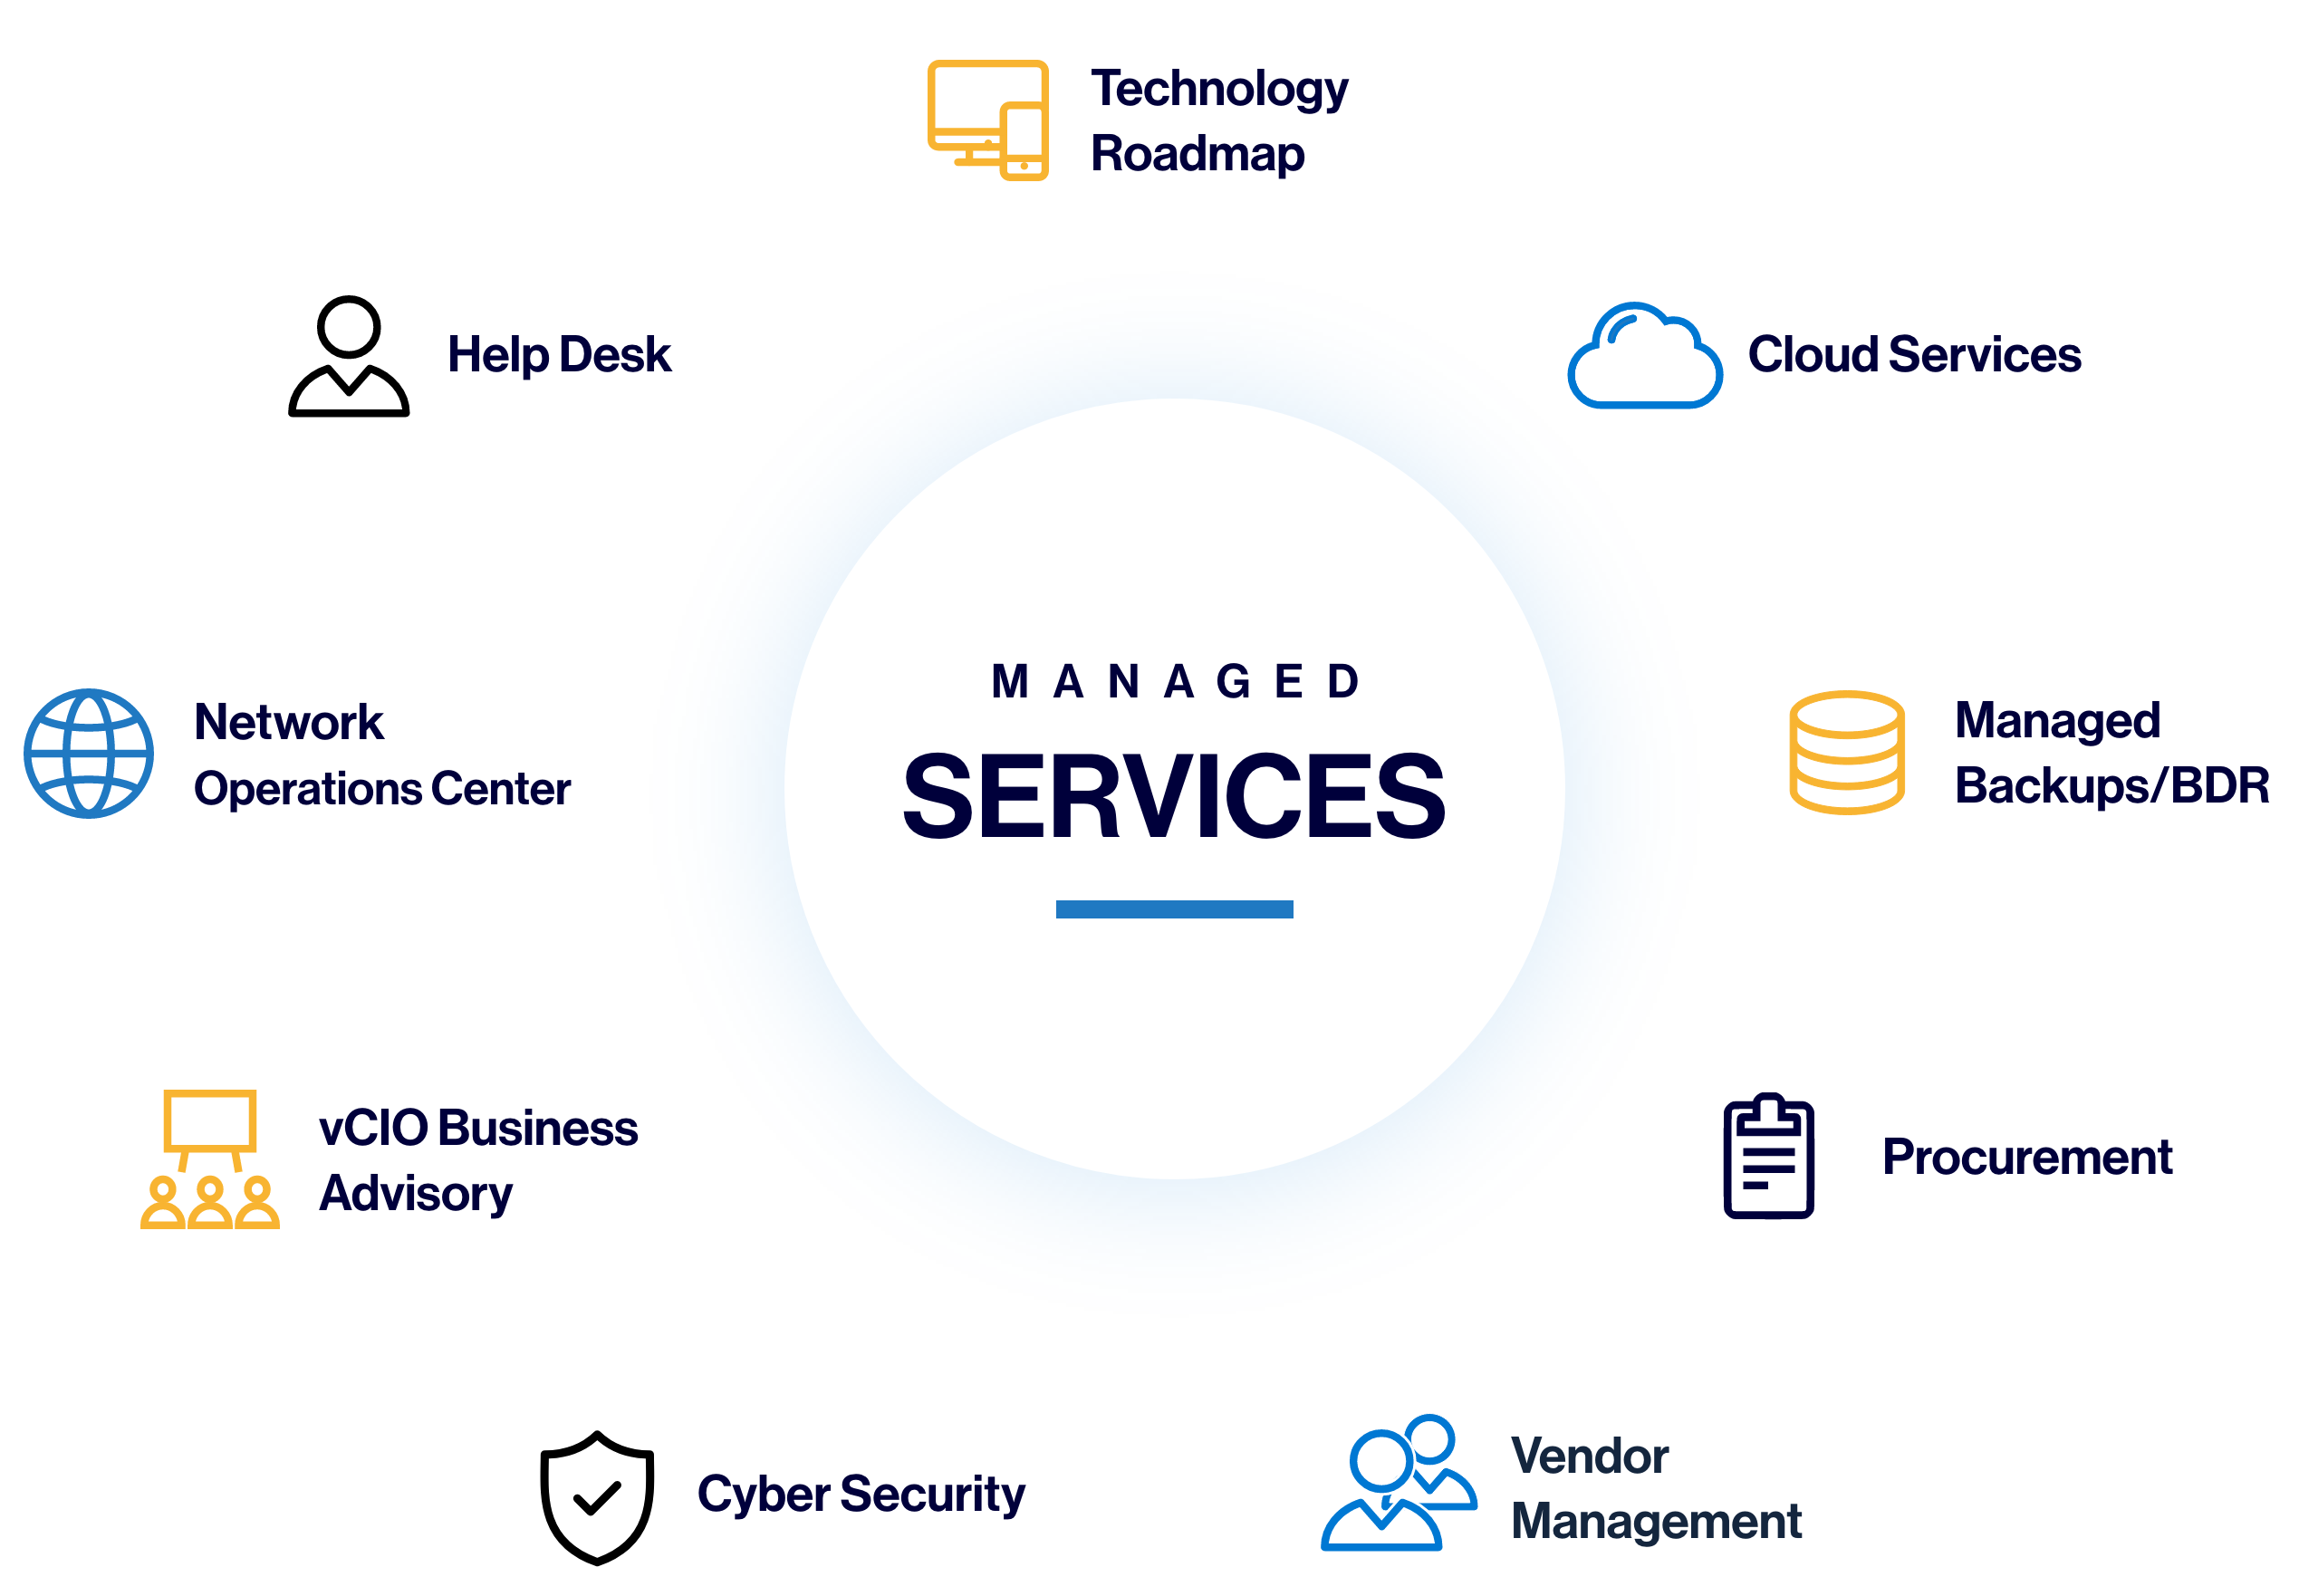 Managed Services Diagram with Icons of Offerings - Help Desk, Technology Roadmap, Cloud Services, Network Operations Center, Managed Backups/BDR, vCIO Business Advisory, Procurement, Cyber Security, and Vendor Management